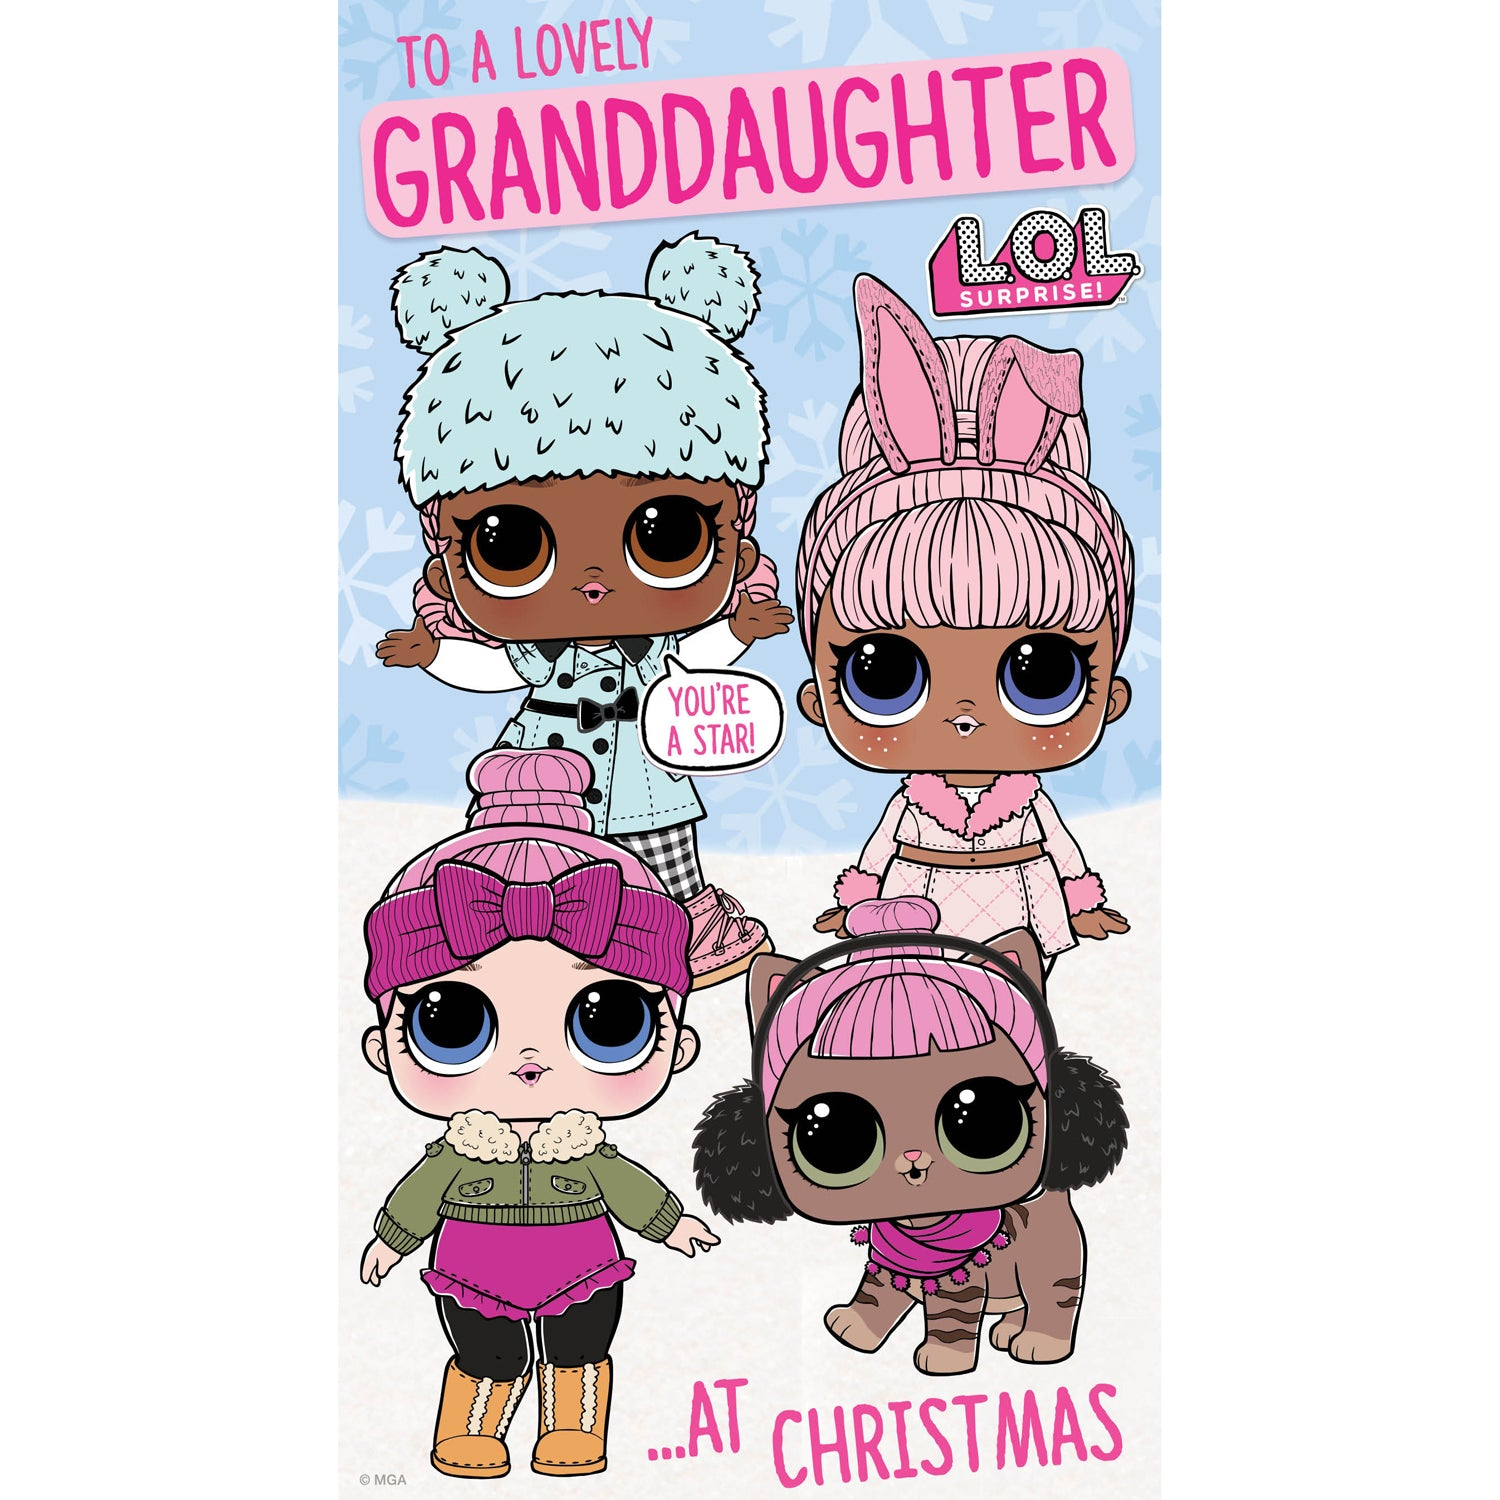 LOL Surprise Granddaughter Christmas Card